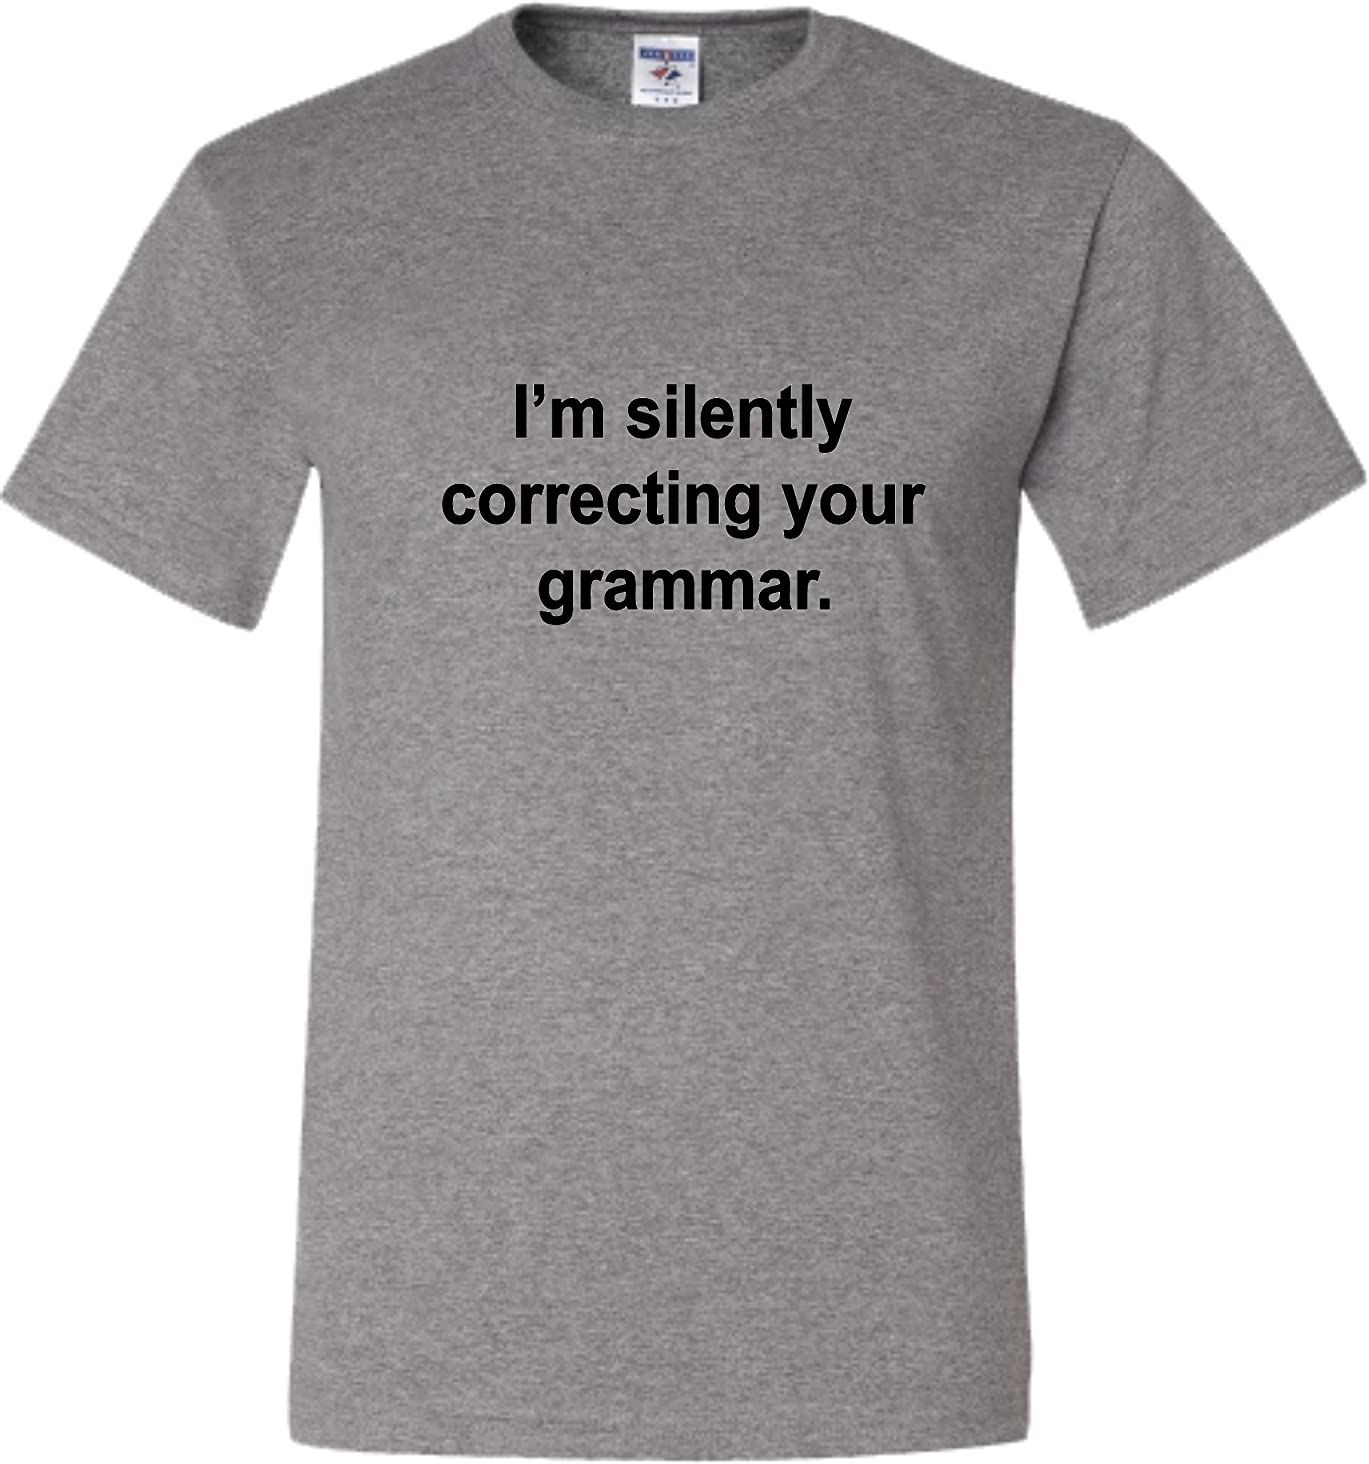 Go All Out Adult I'm Silently Correcting Your Grammar English Major T-Shirt